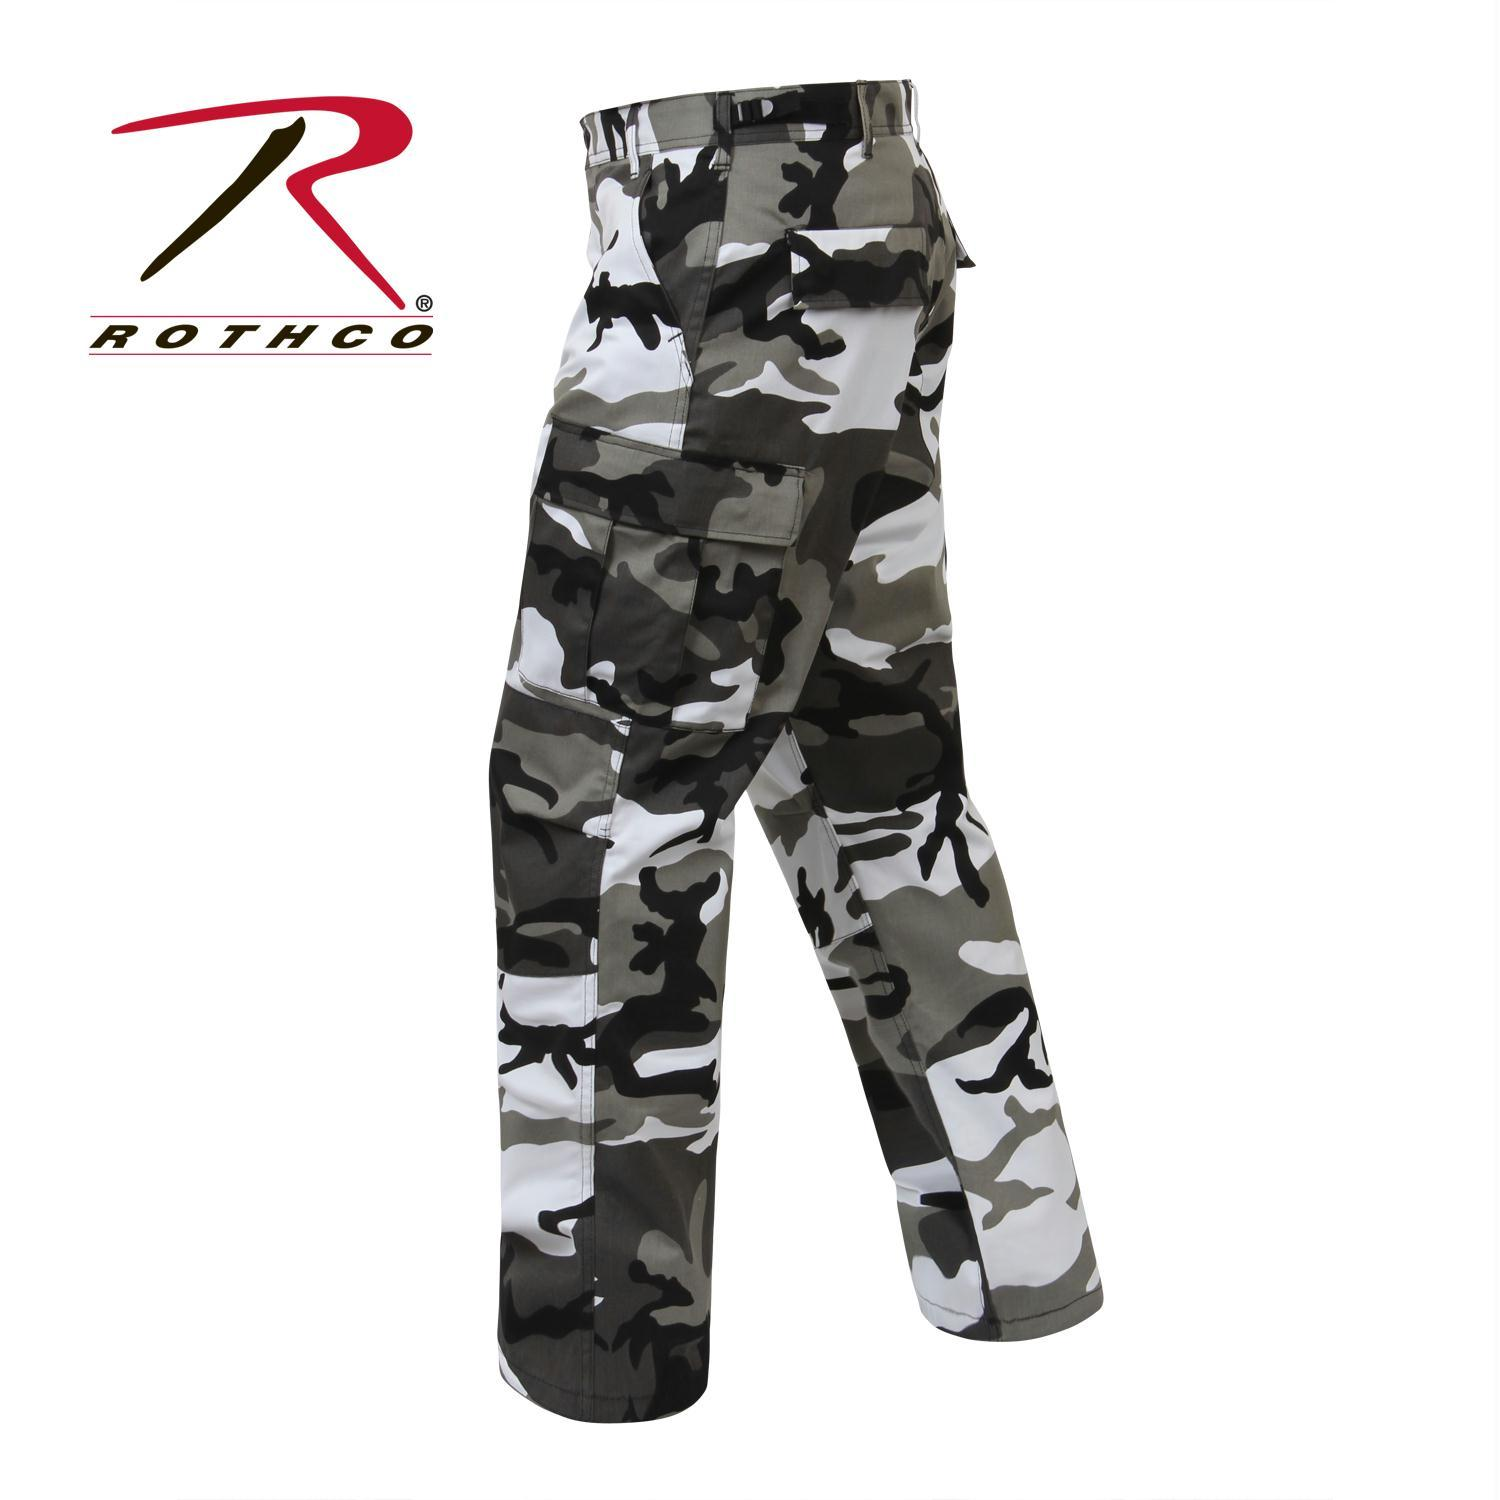 City Camo BDU Pants, Military Fatigues